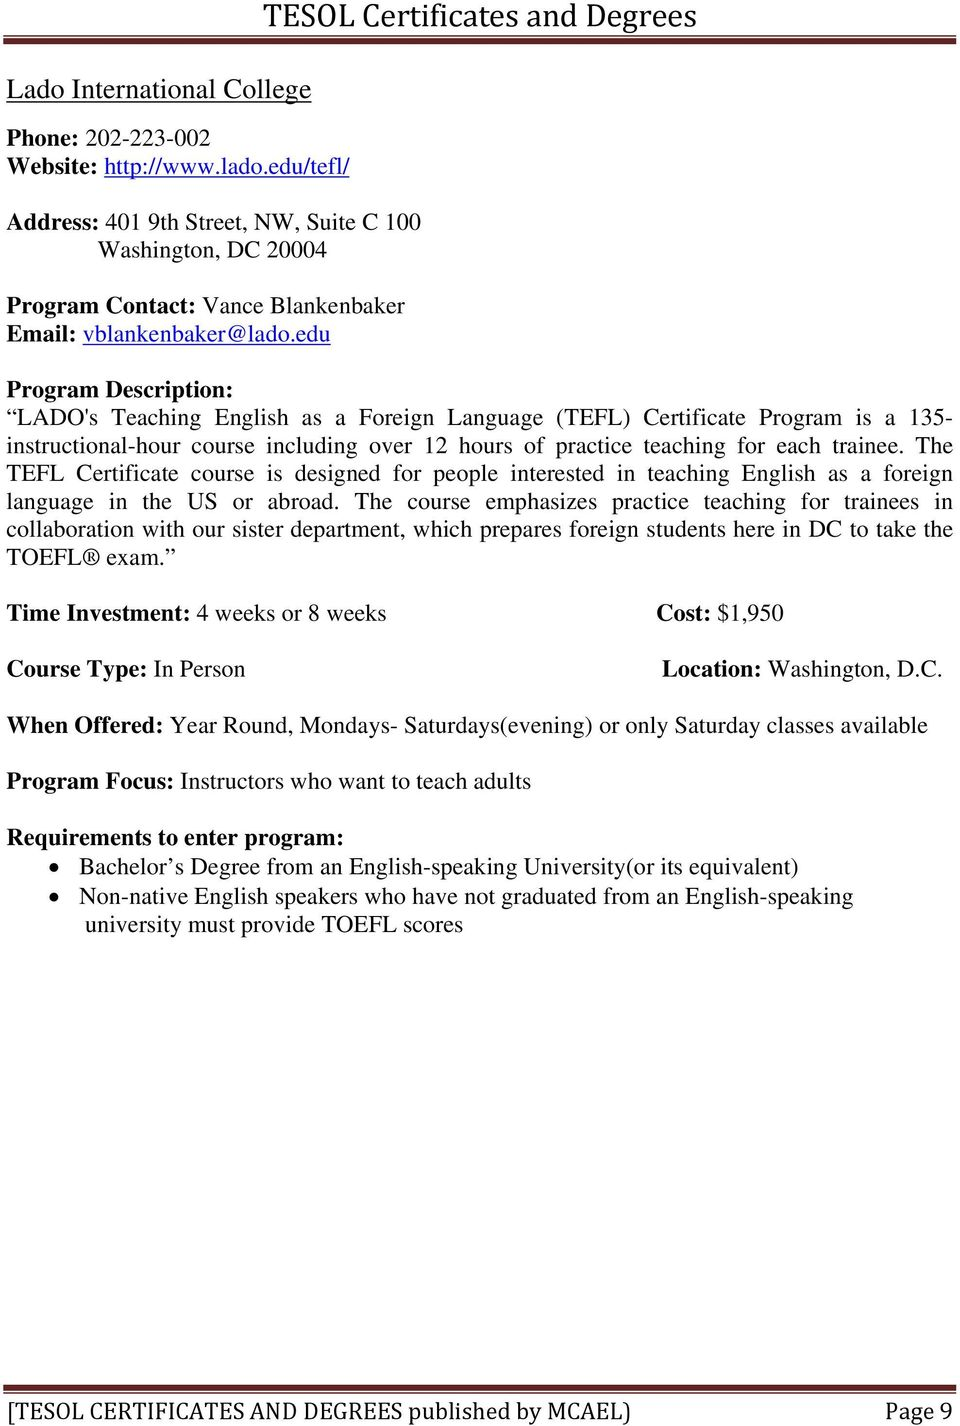 Tesol Certificates And Degrees Pdf